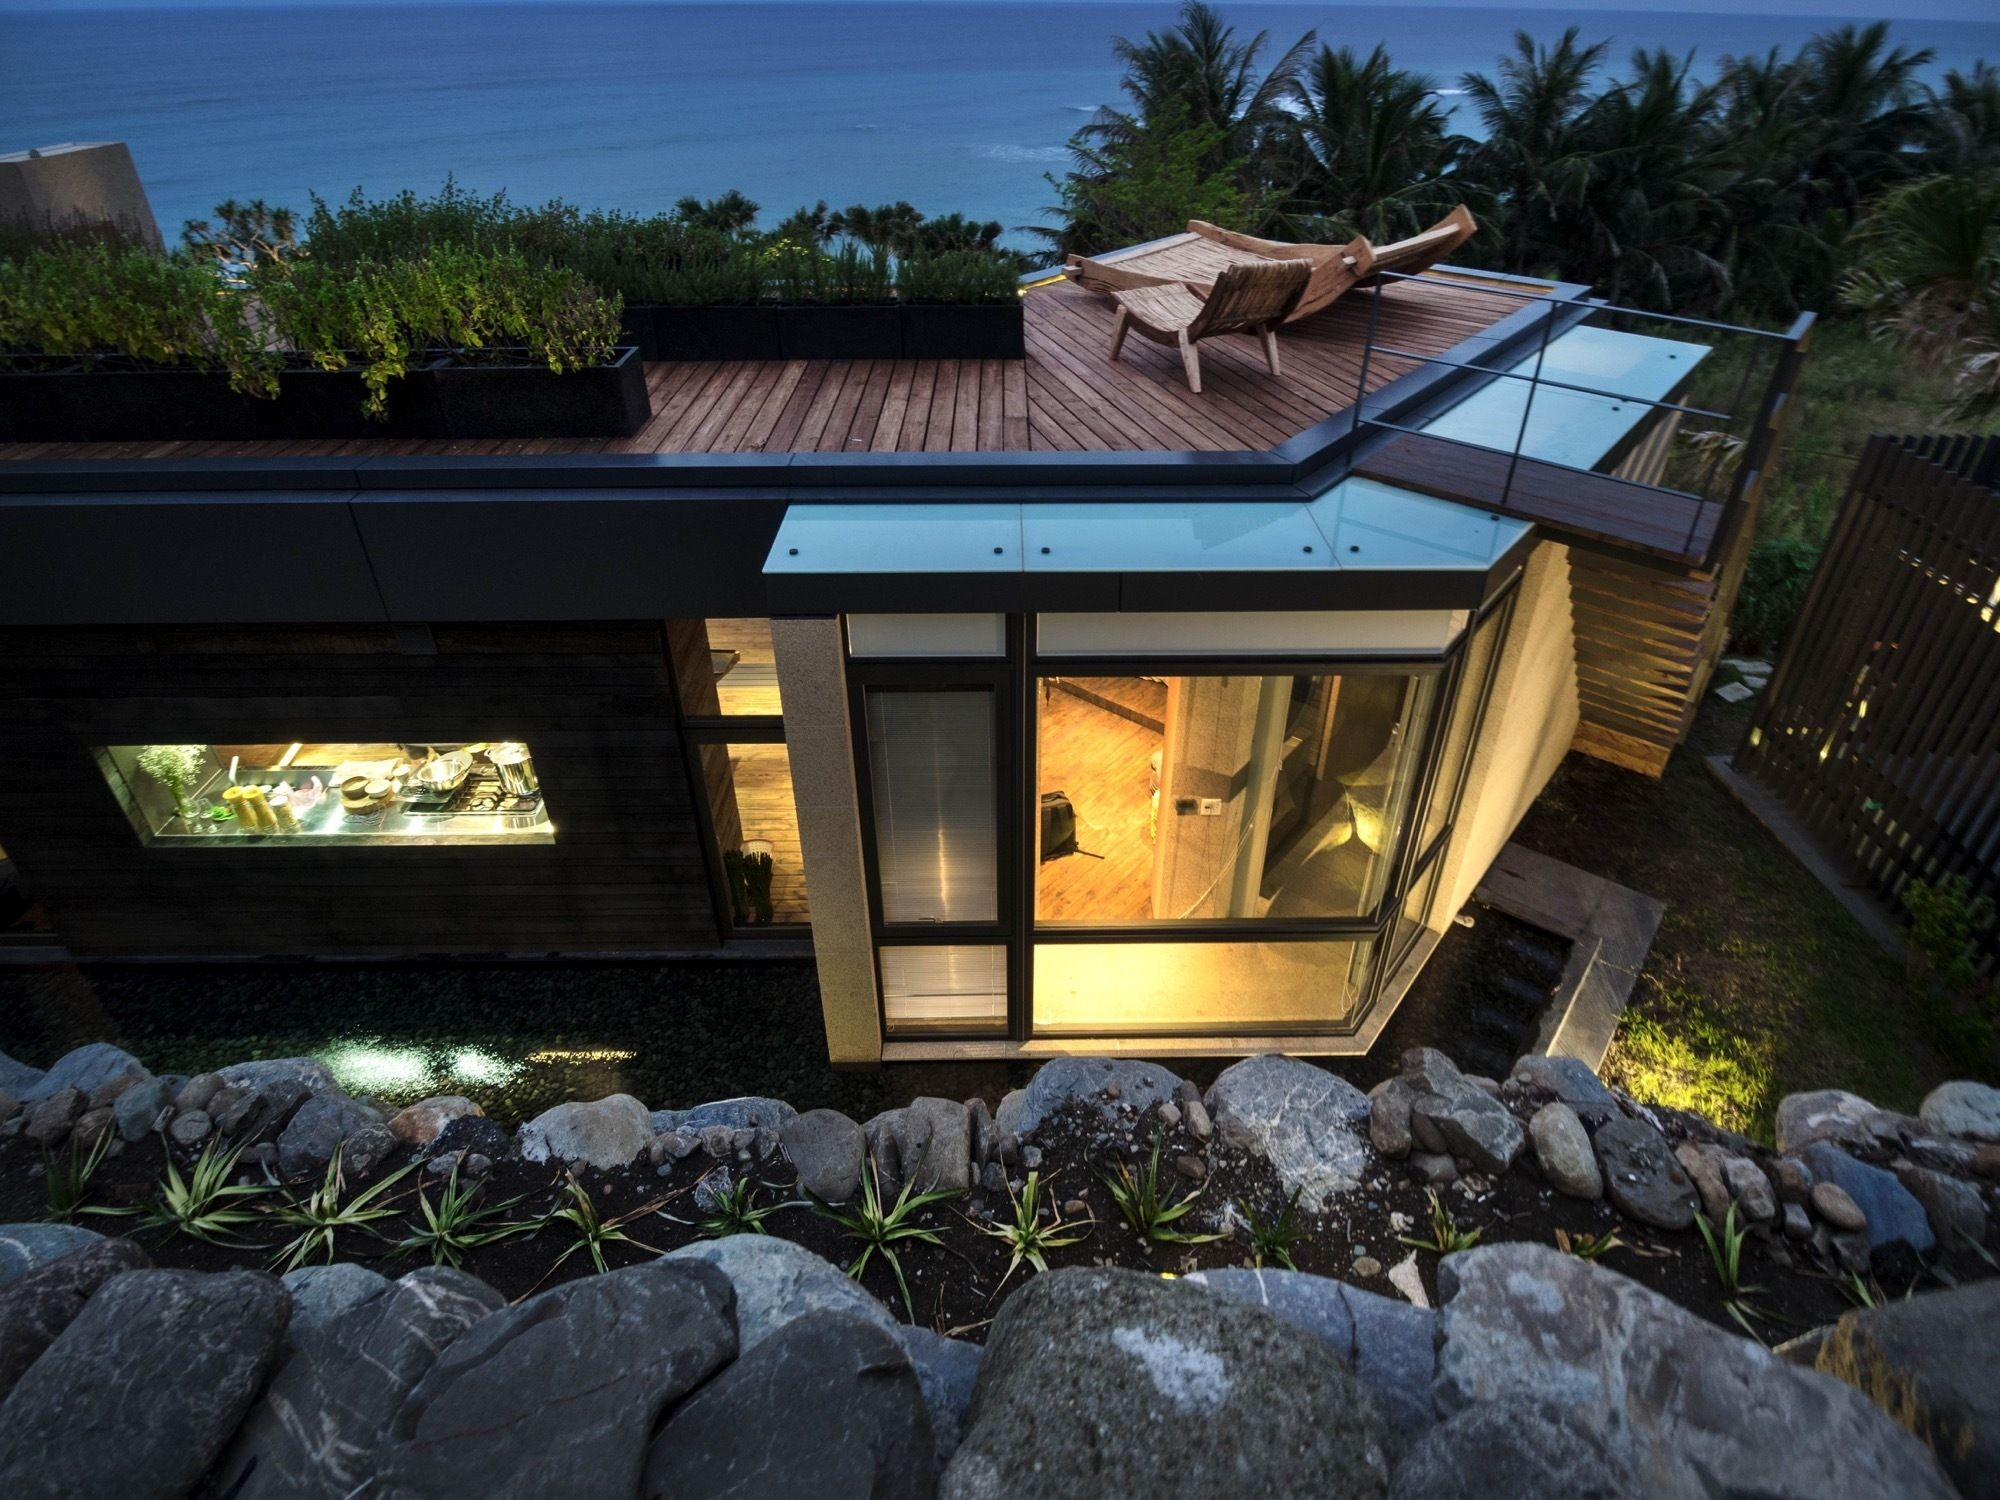 1000+ images about Modern House Designs on Pinterest - ^